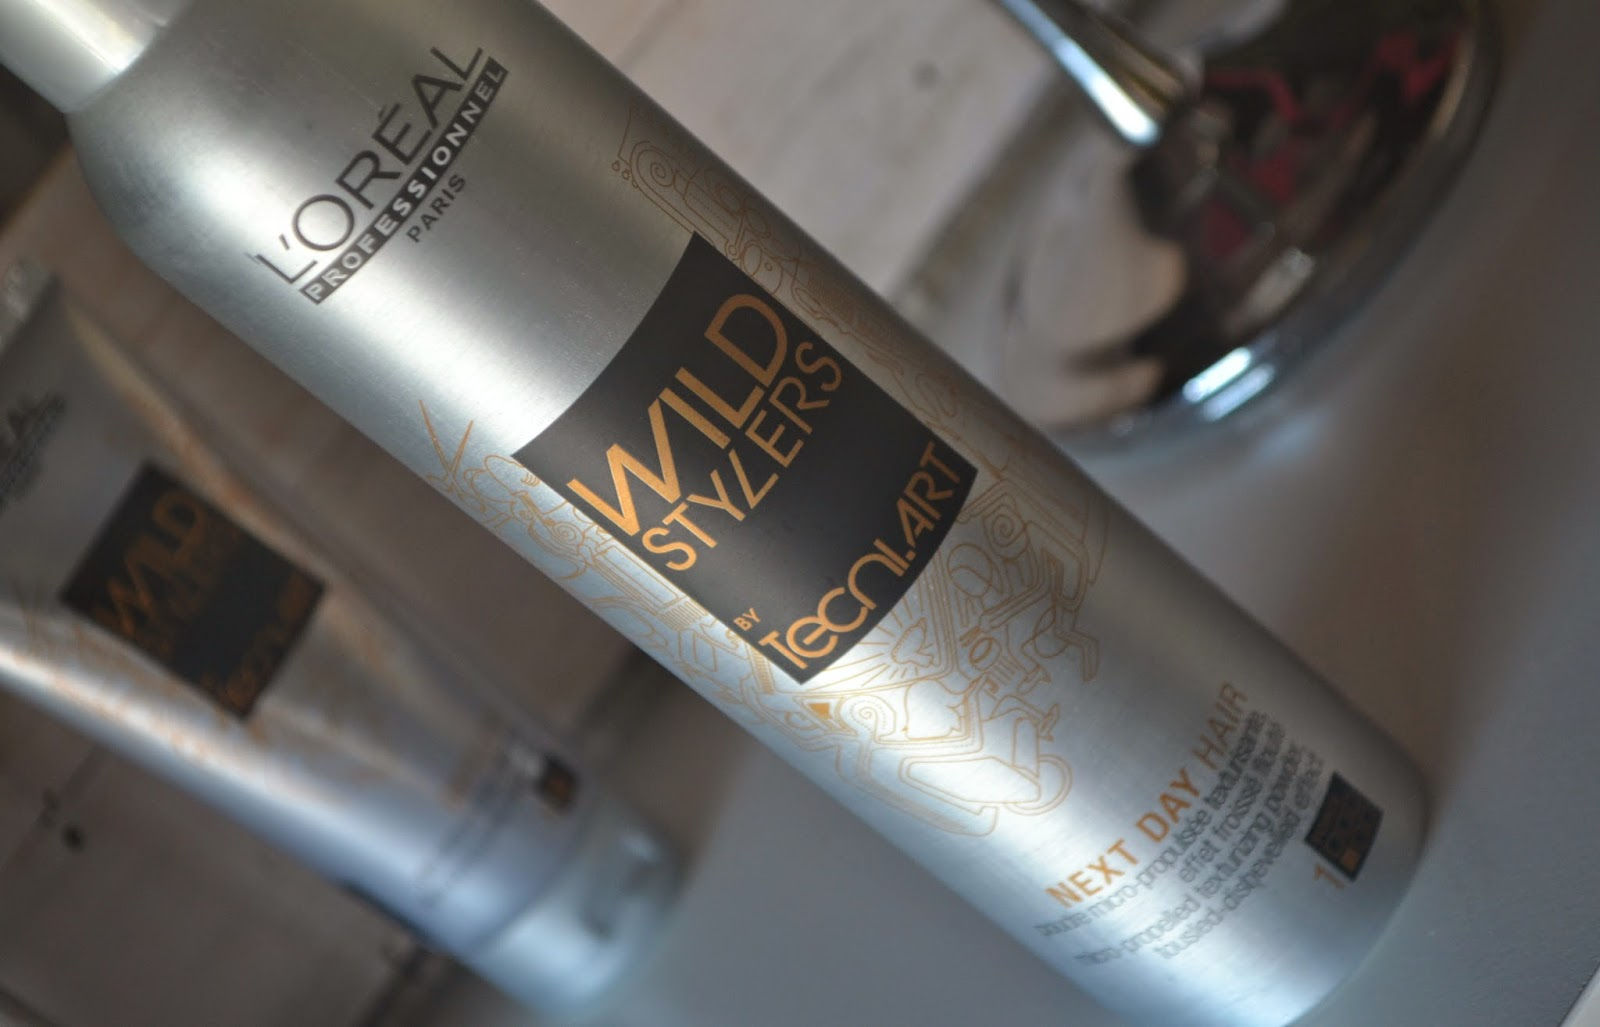 L'Oréal Professionnel Hairspray Next Day Hair Wild Stylers uploaded by Mishelle H.